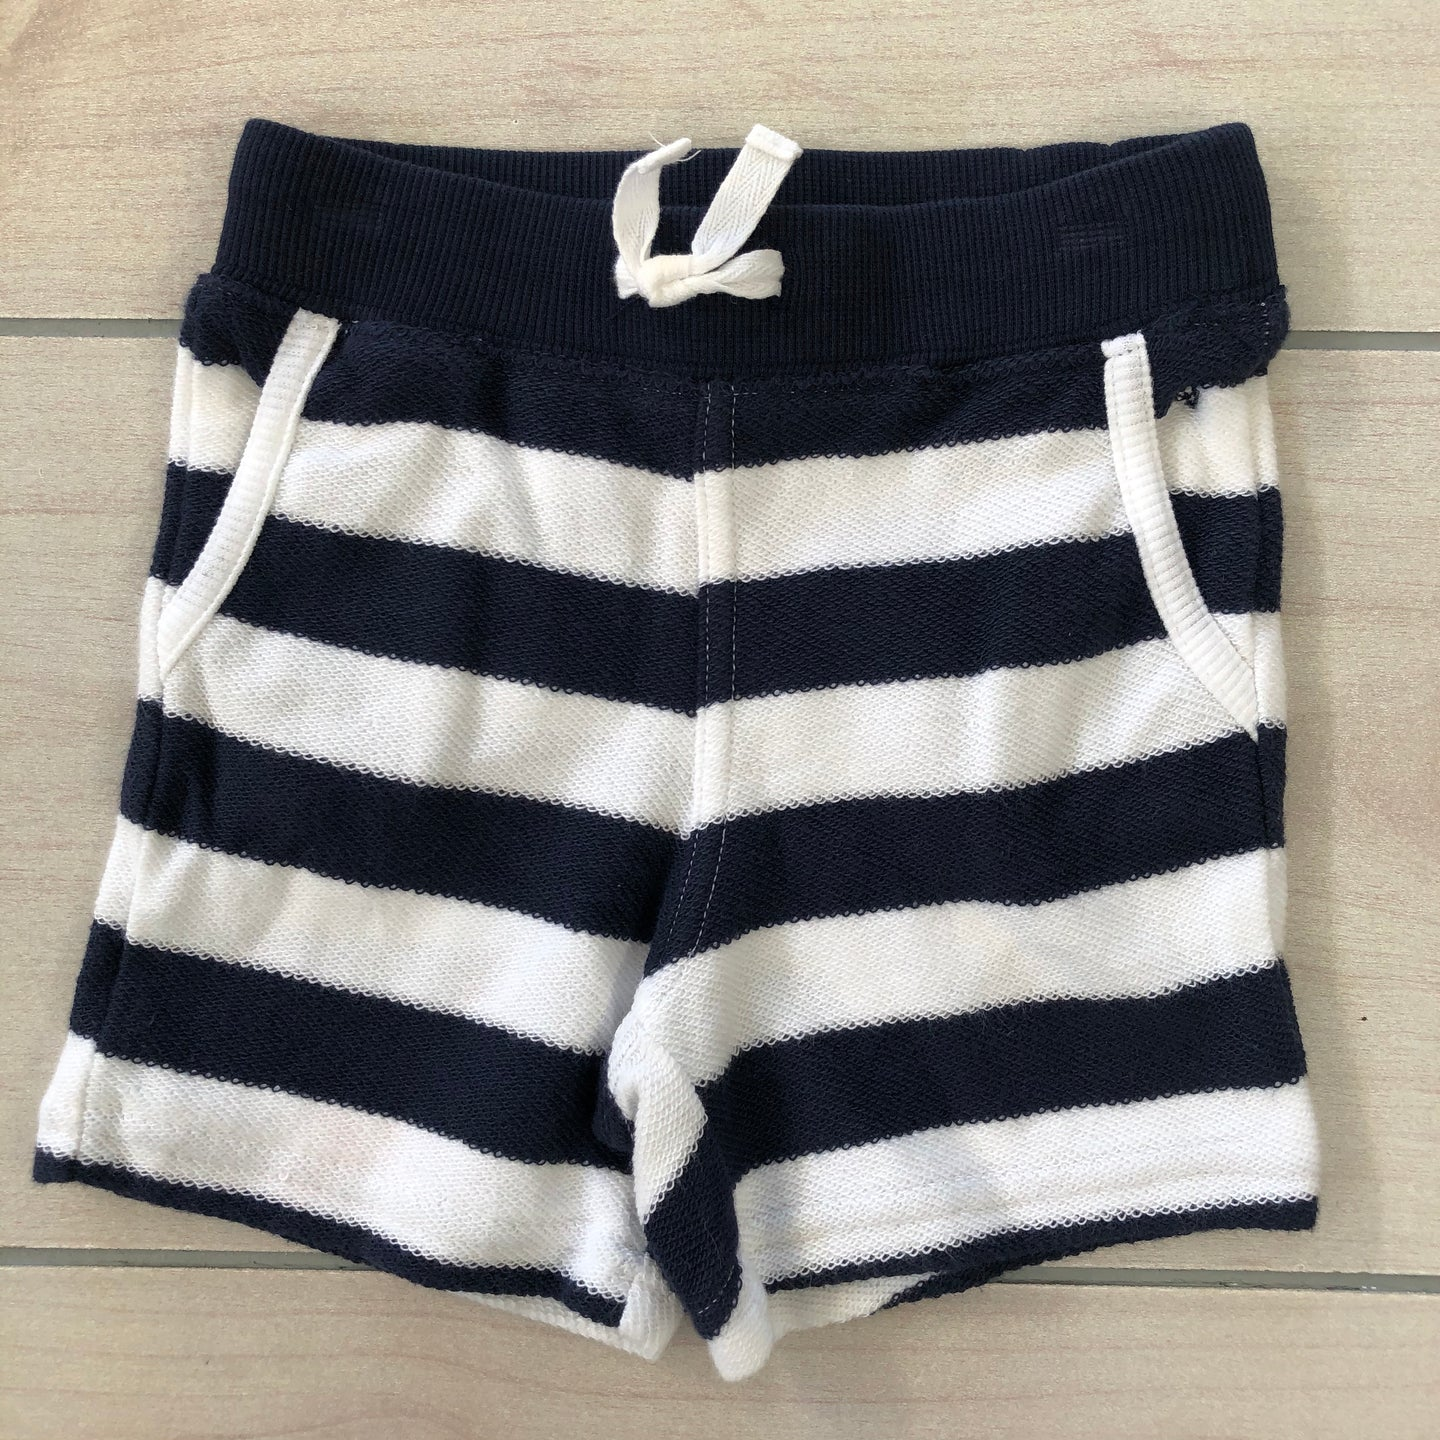 Janie and Jack Striped Shorts Size 3-6 months